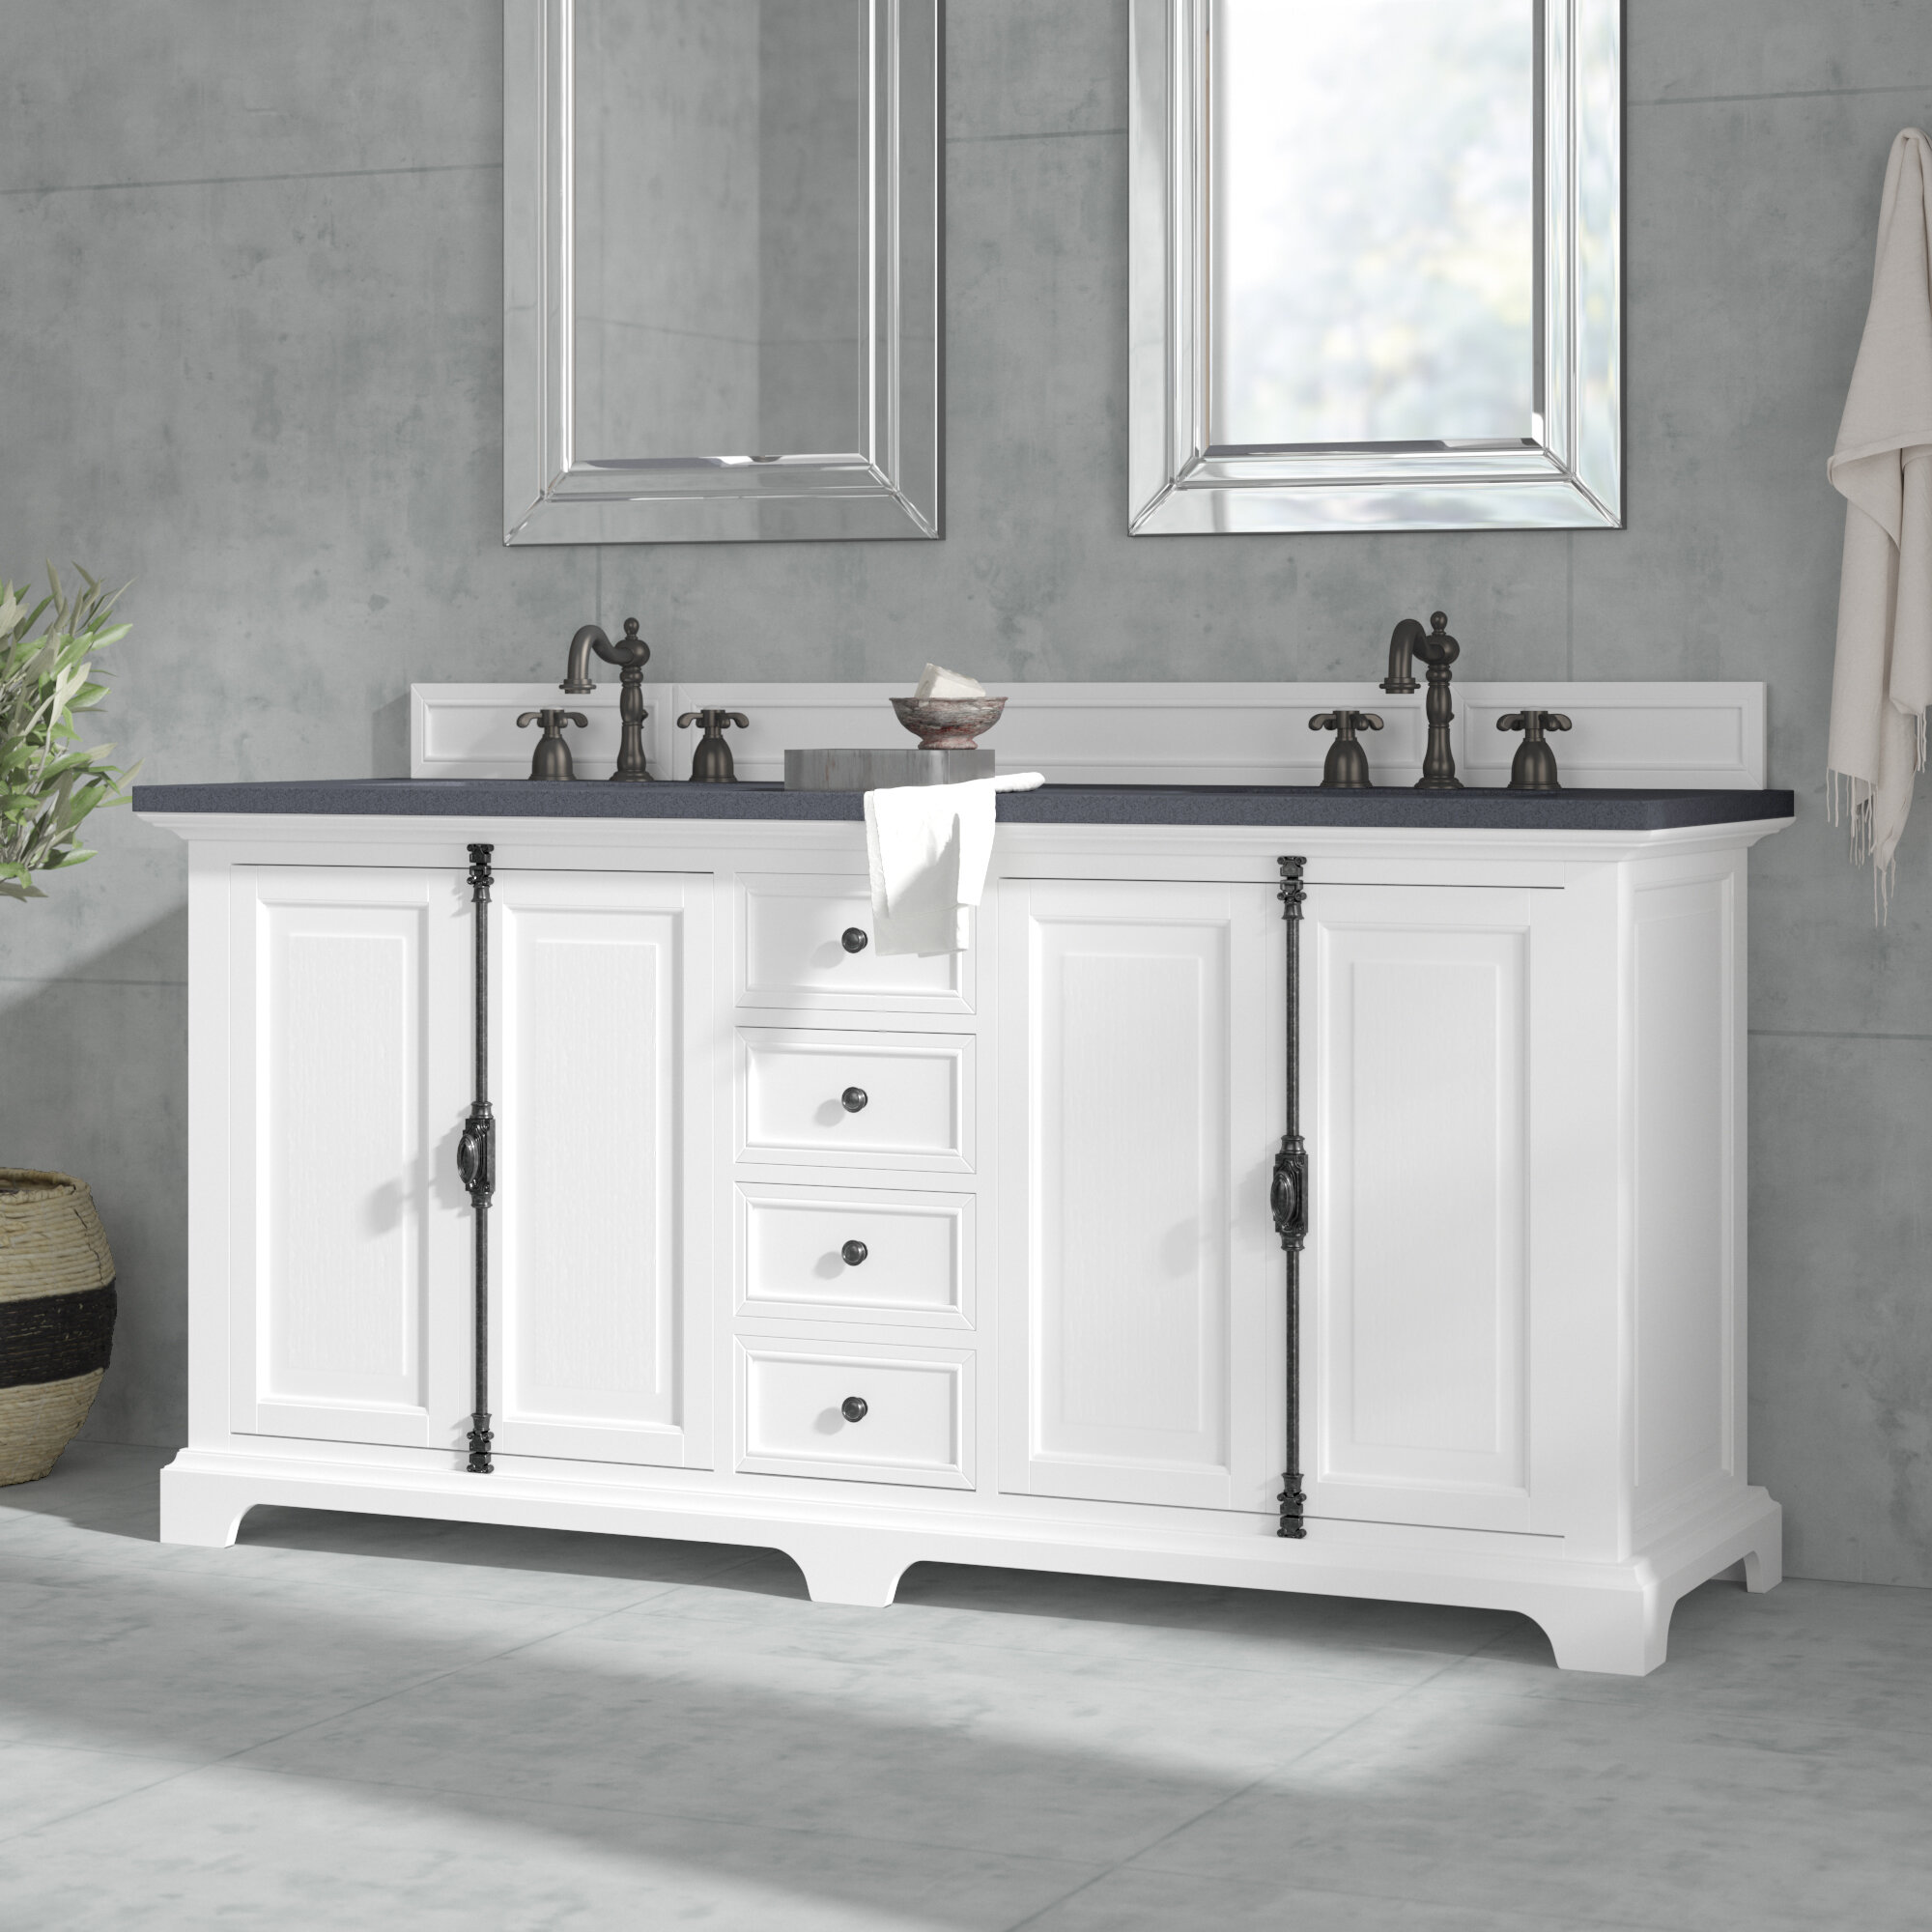 Swell Cuyuna 72 Double Cottage White Bathroom Vanity Set Home Interior And Landscaping Synyenasavecom